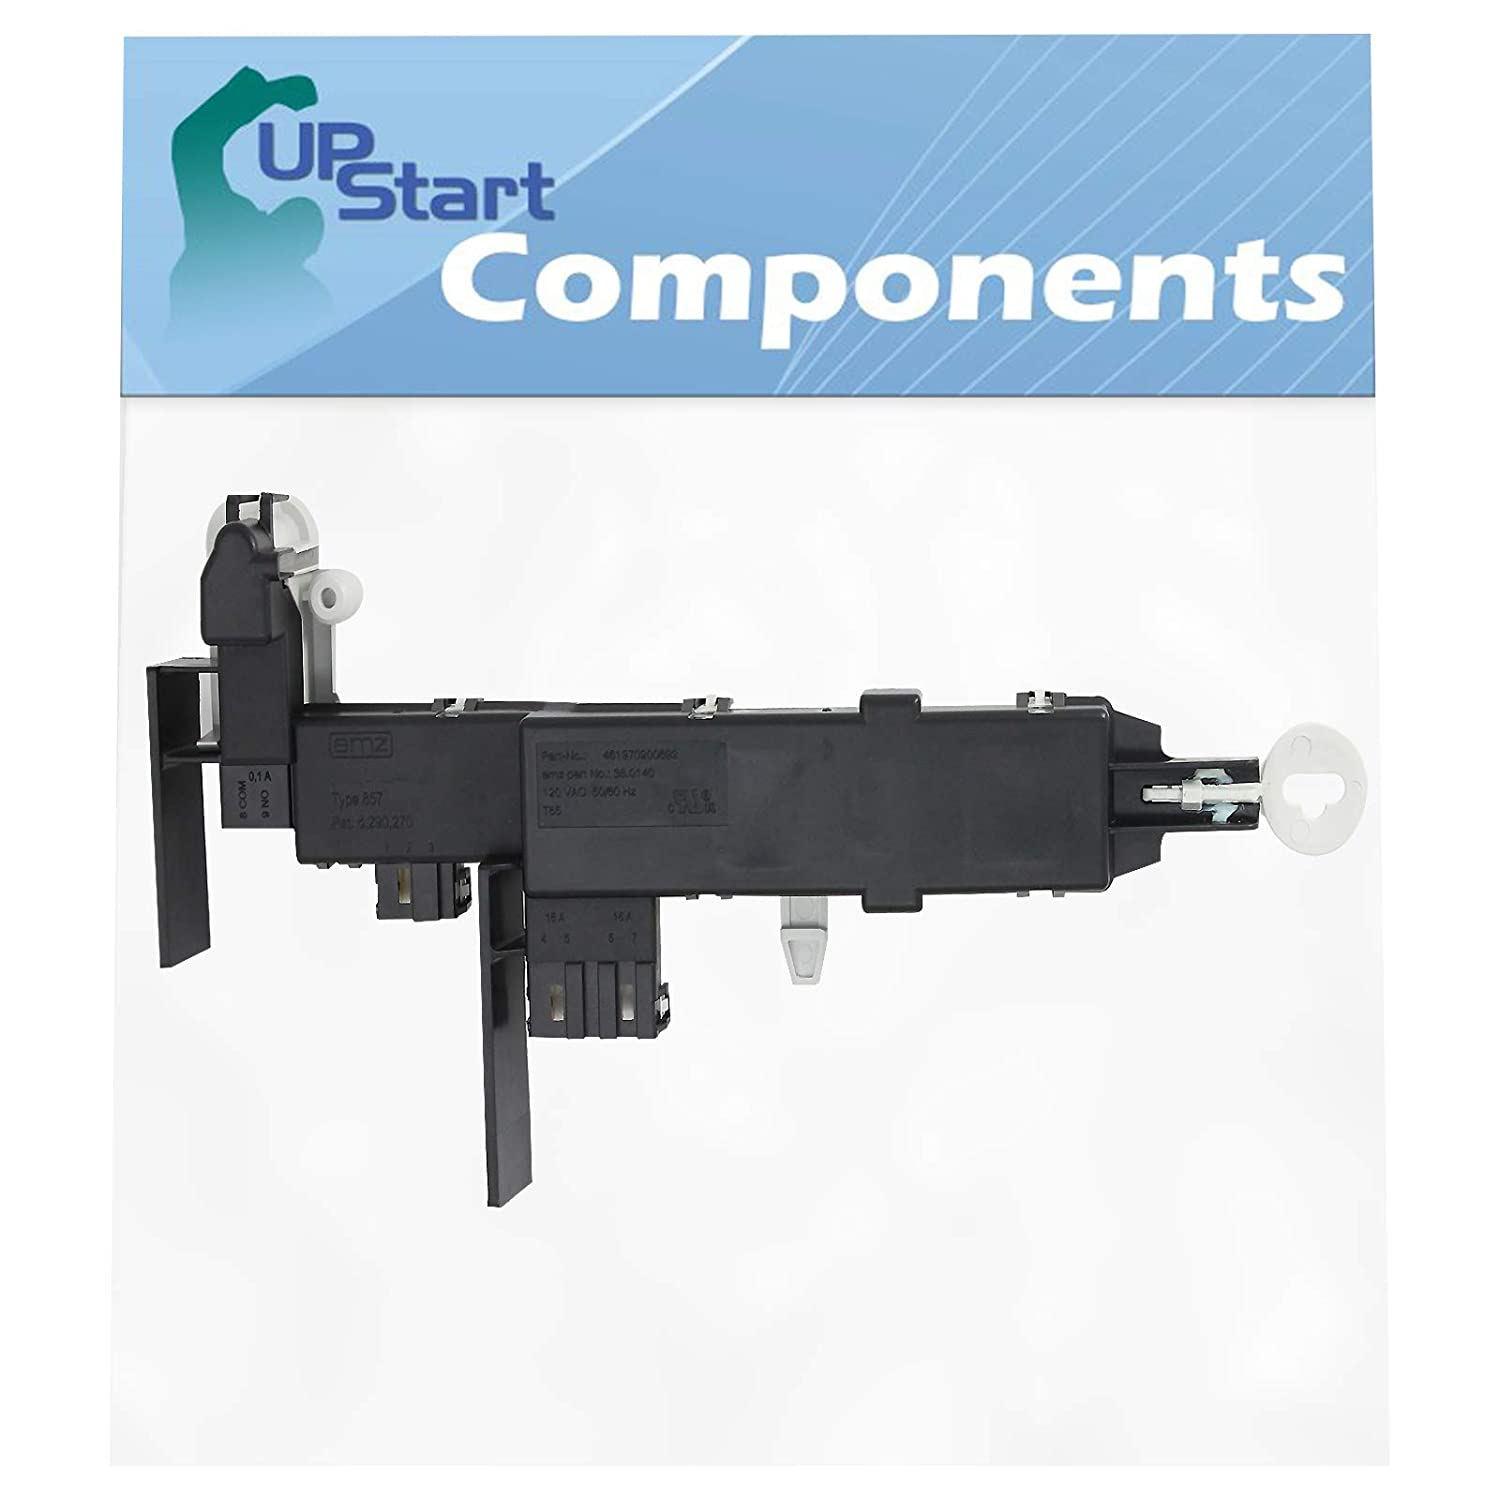 8182634 WP8182634 Washing Machine Door Latch Lock Replacement for Samsung WF337AAG//XAA Washer Compatible with DC64-00519B Washer Door Lock Switch Assembly